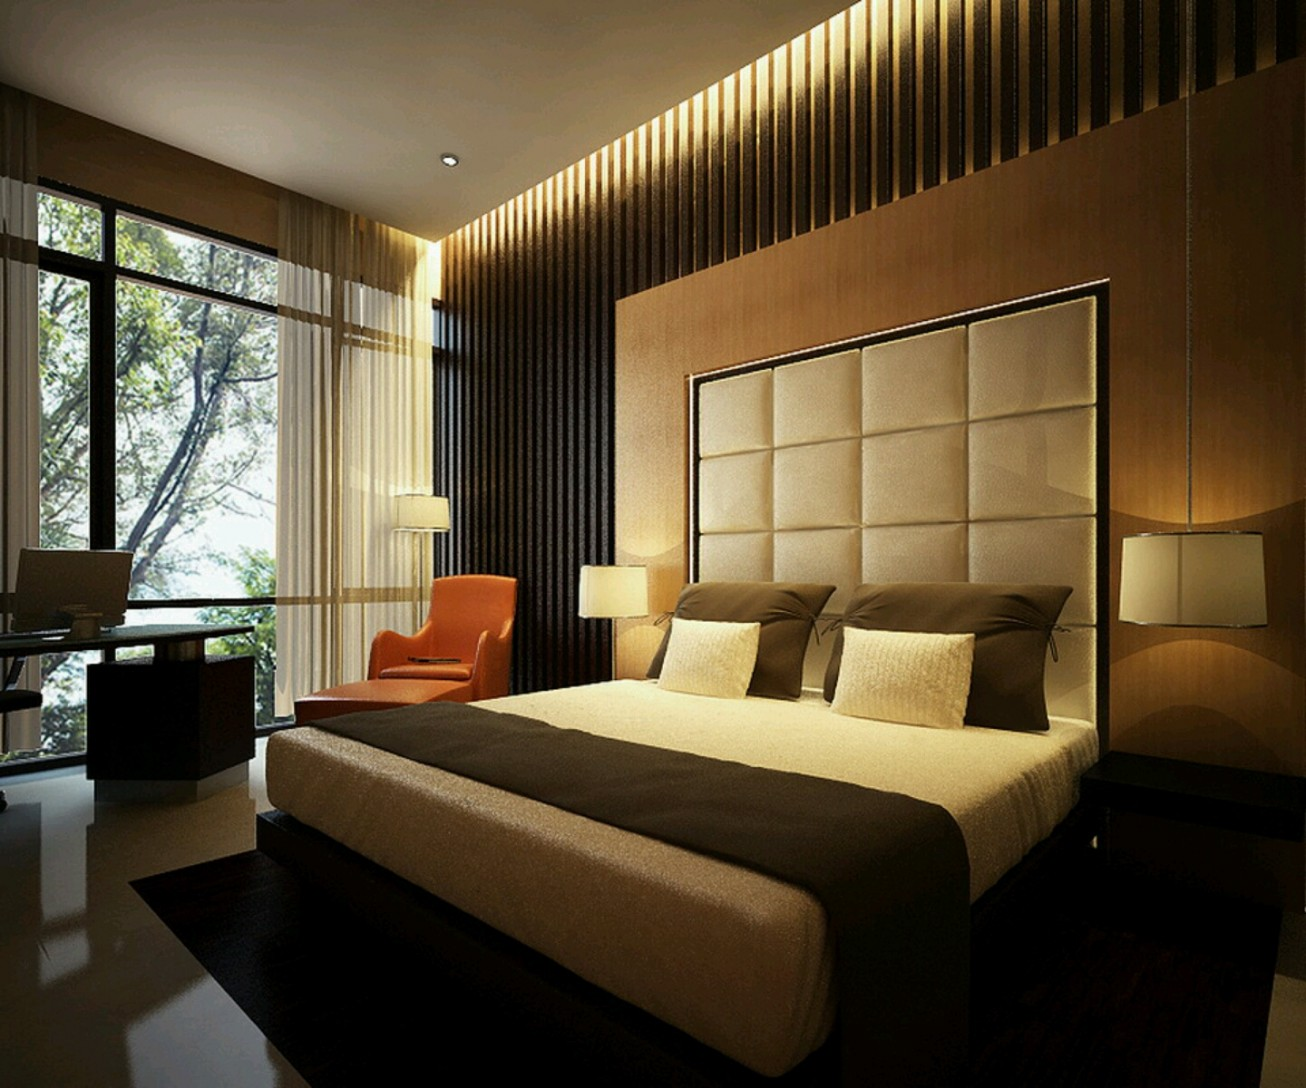 25 Cool Bedroom Designs Collection - The WoW Style on Room Decore  id=23925